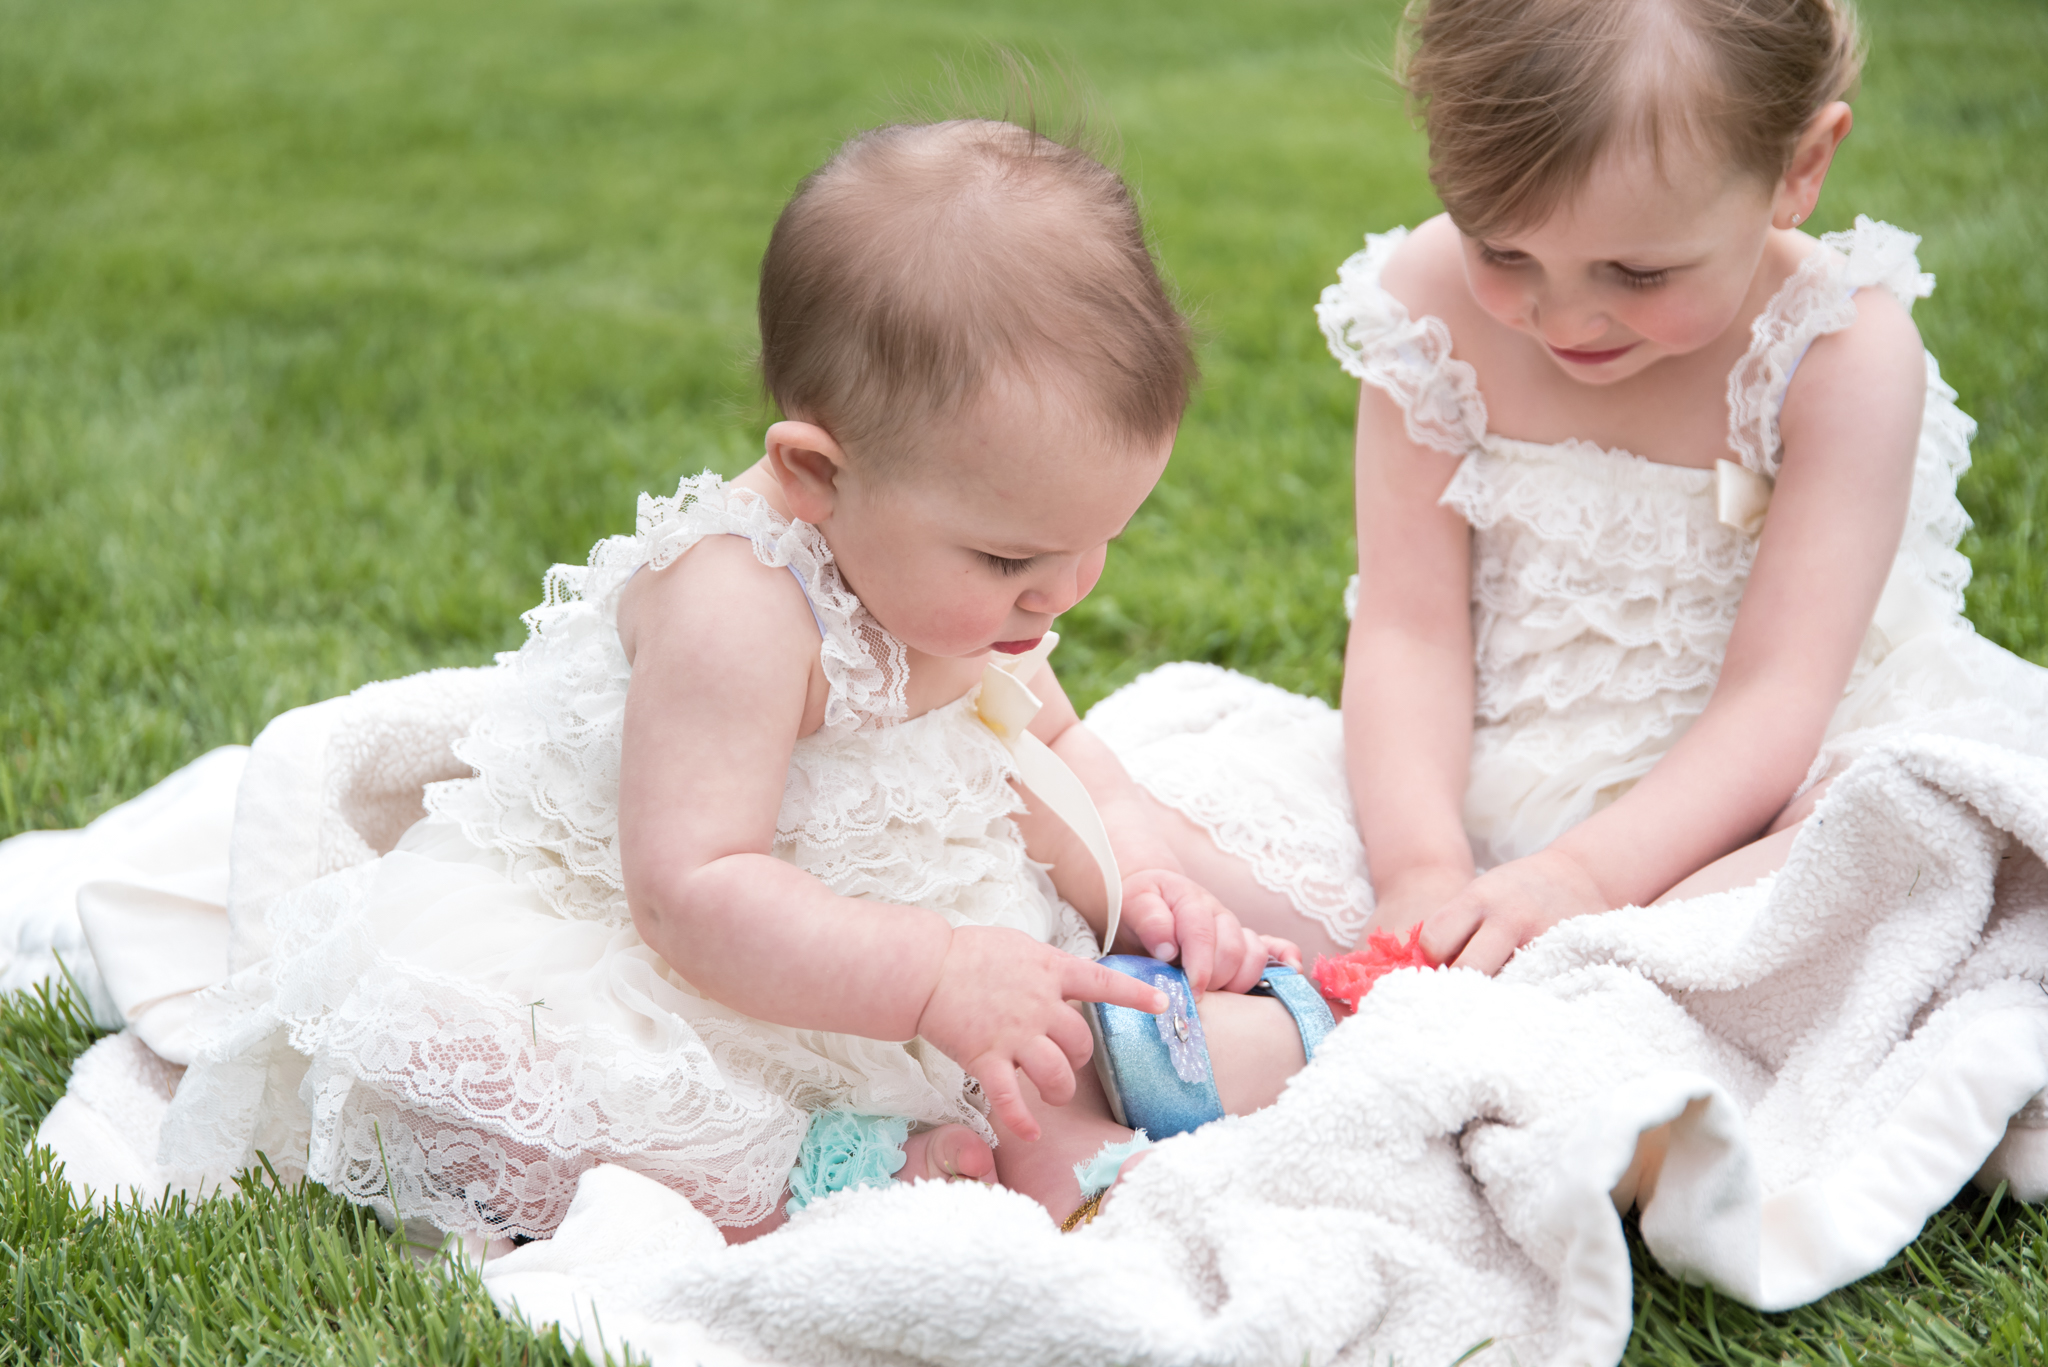 Infant wonderment with siblings shoes